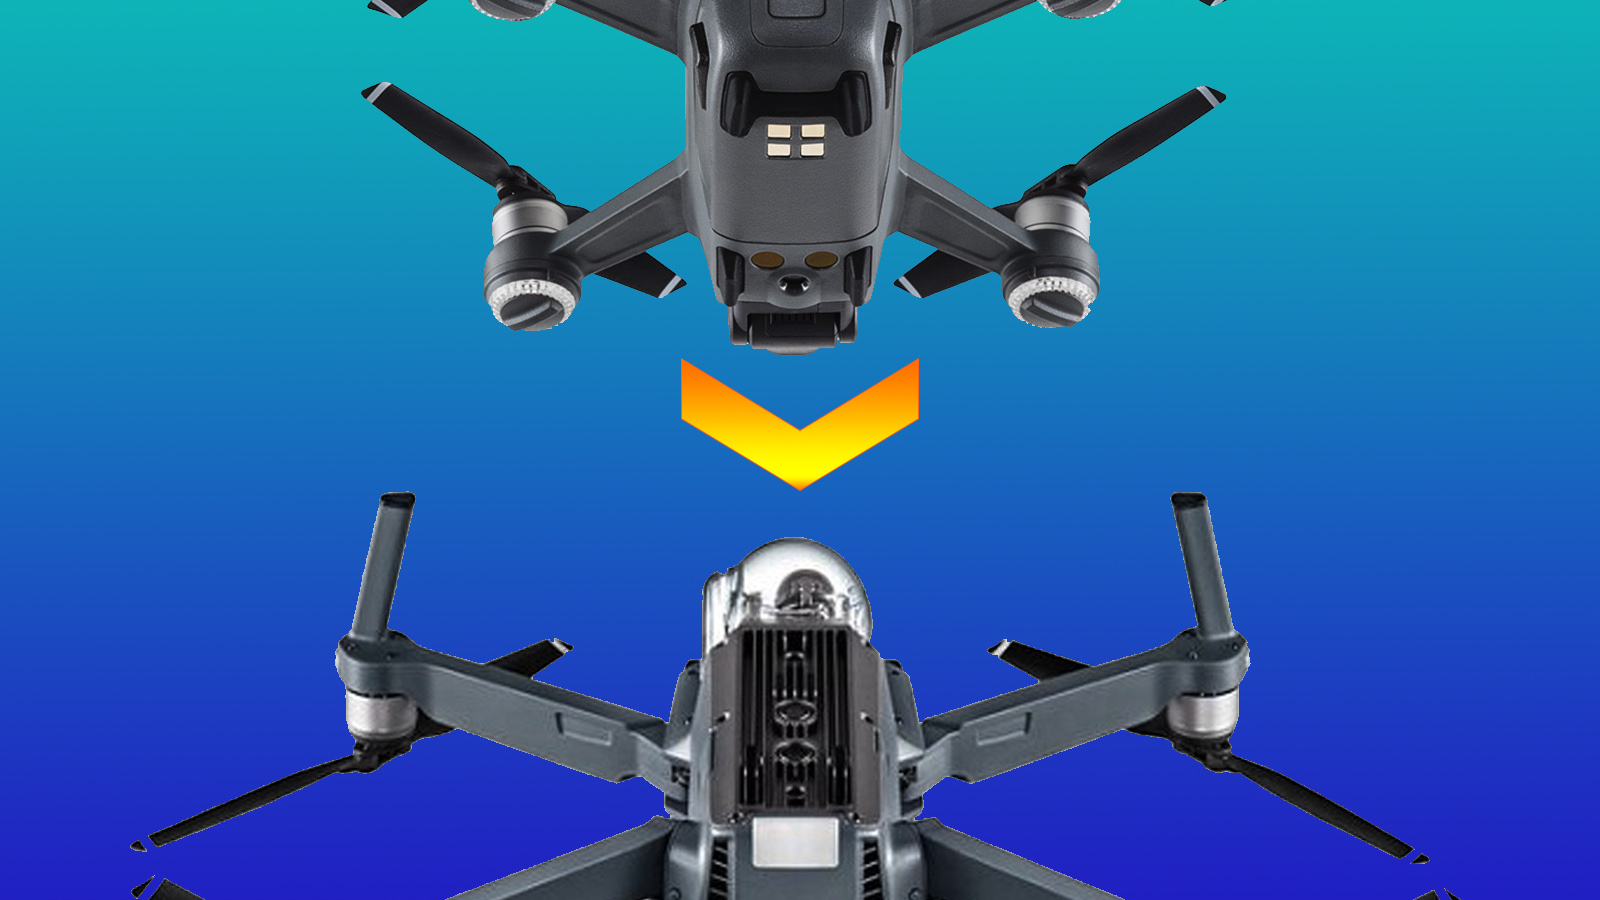 Does DJI launch a Phantom 5 or Mavic 2 with technology from SPARK